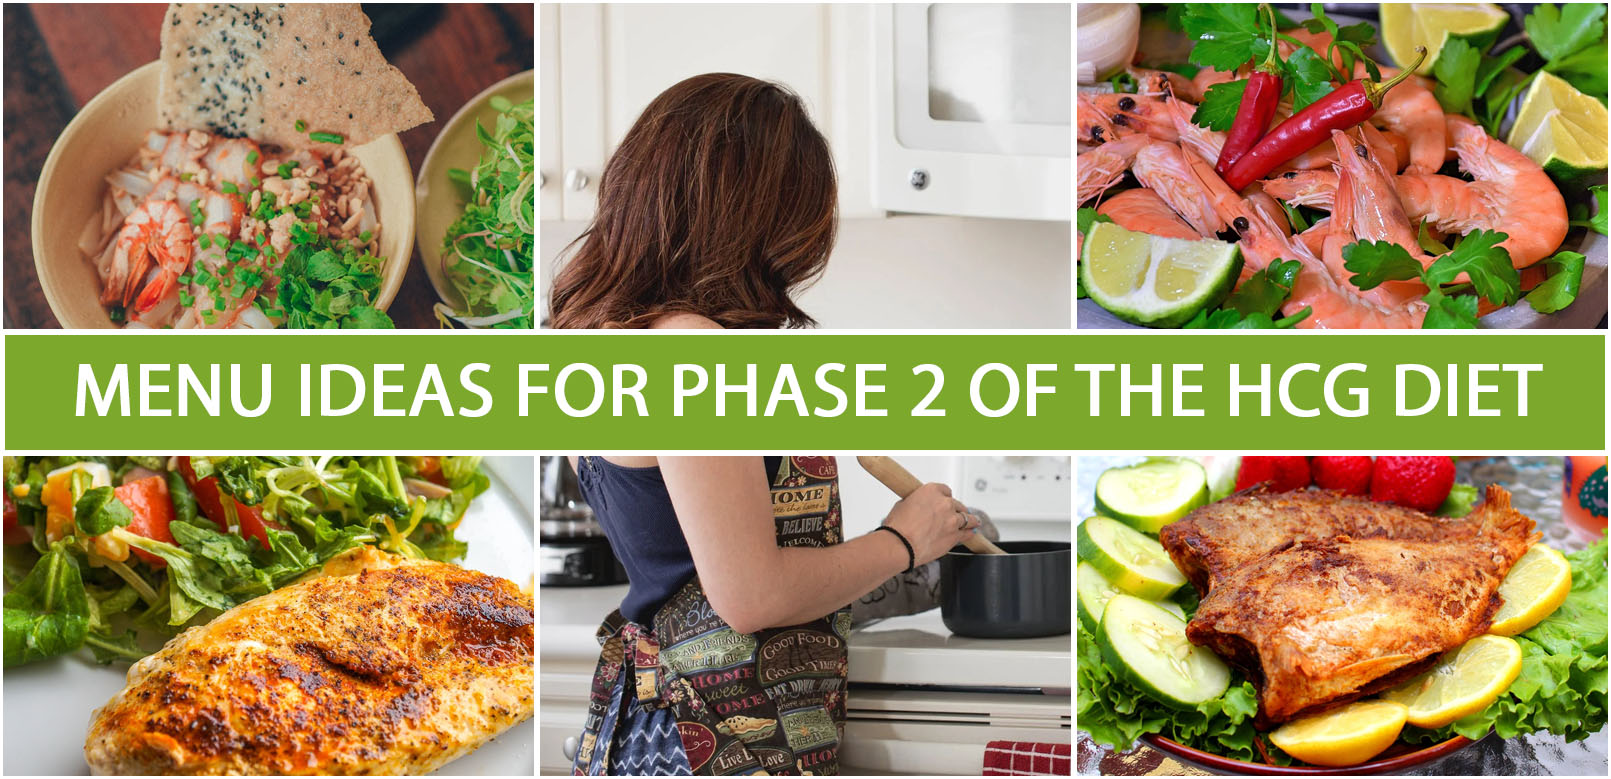 MENU IDEAS FOR PHASE 2 OF THE HCG DIET